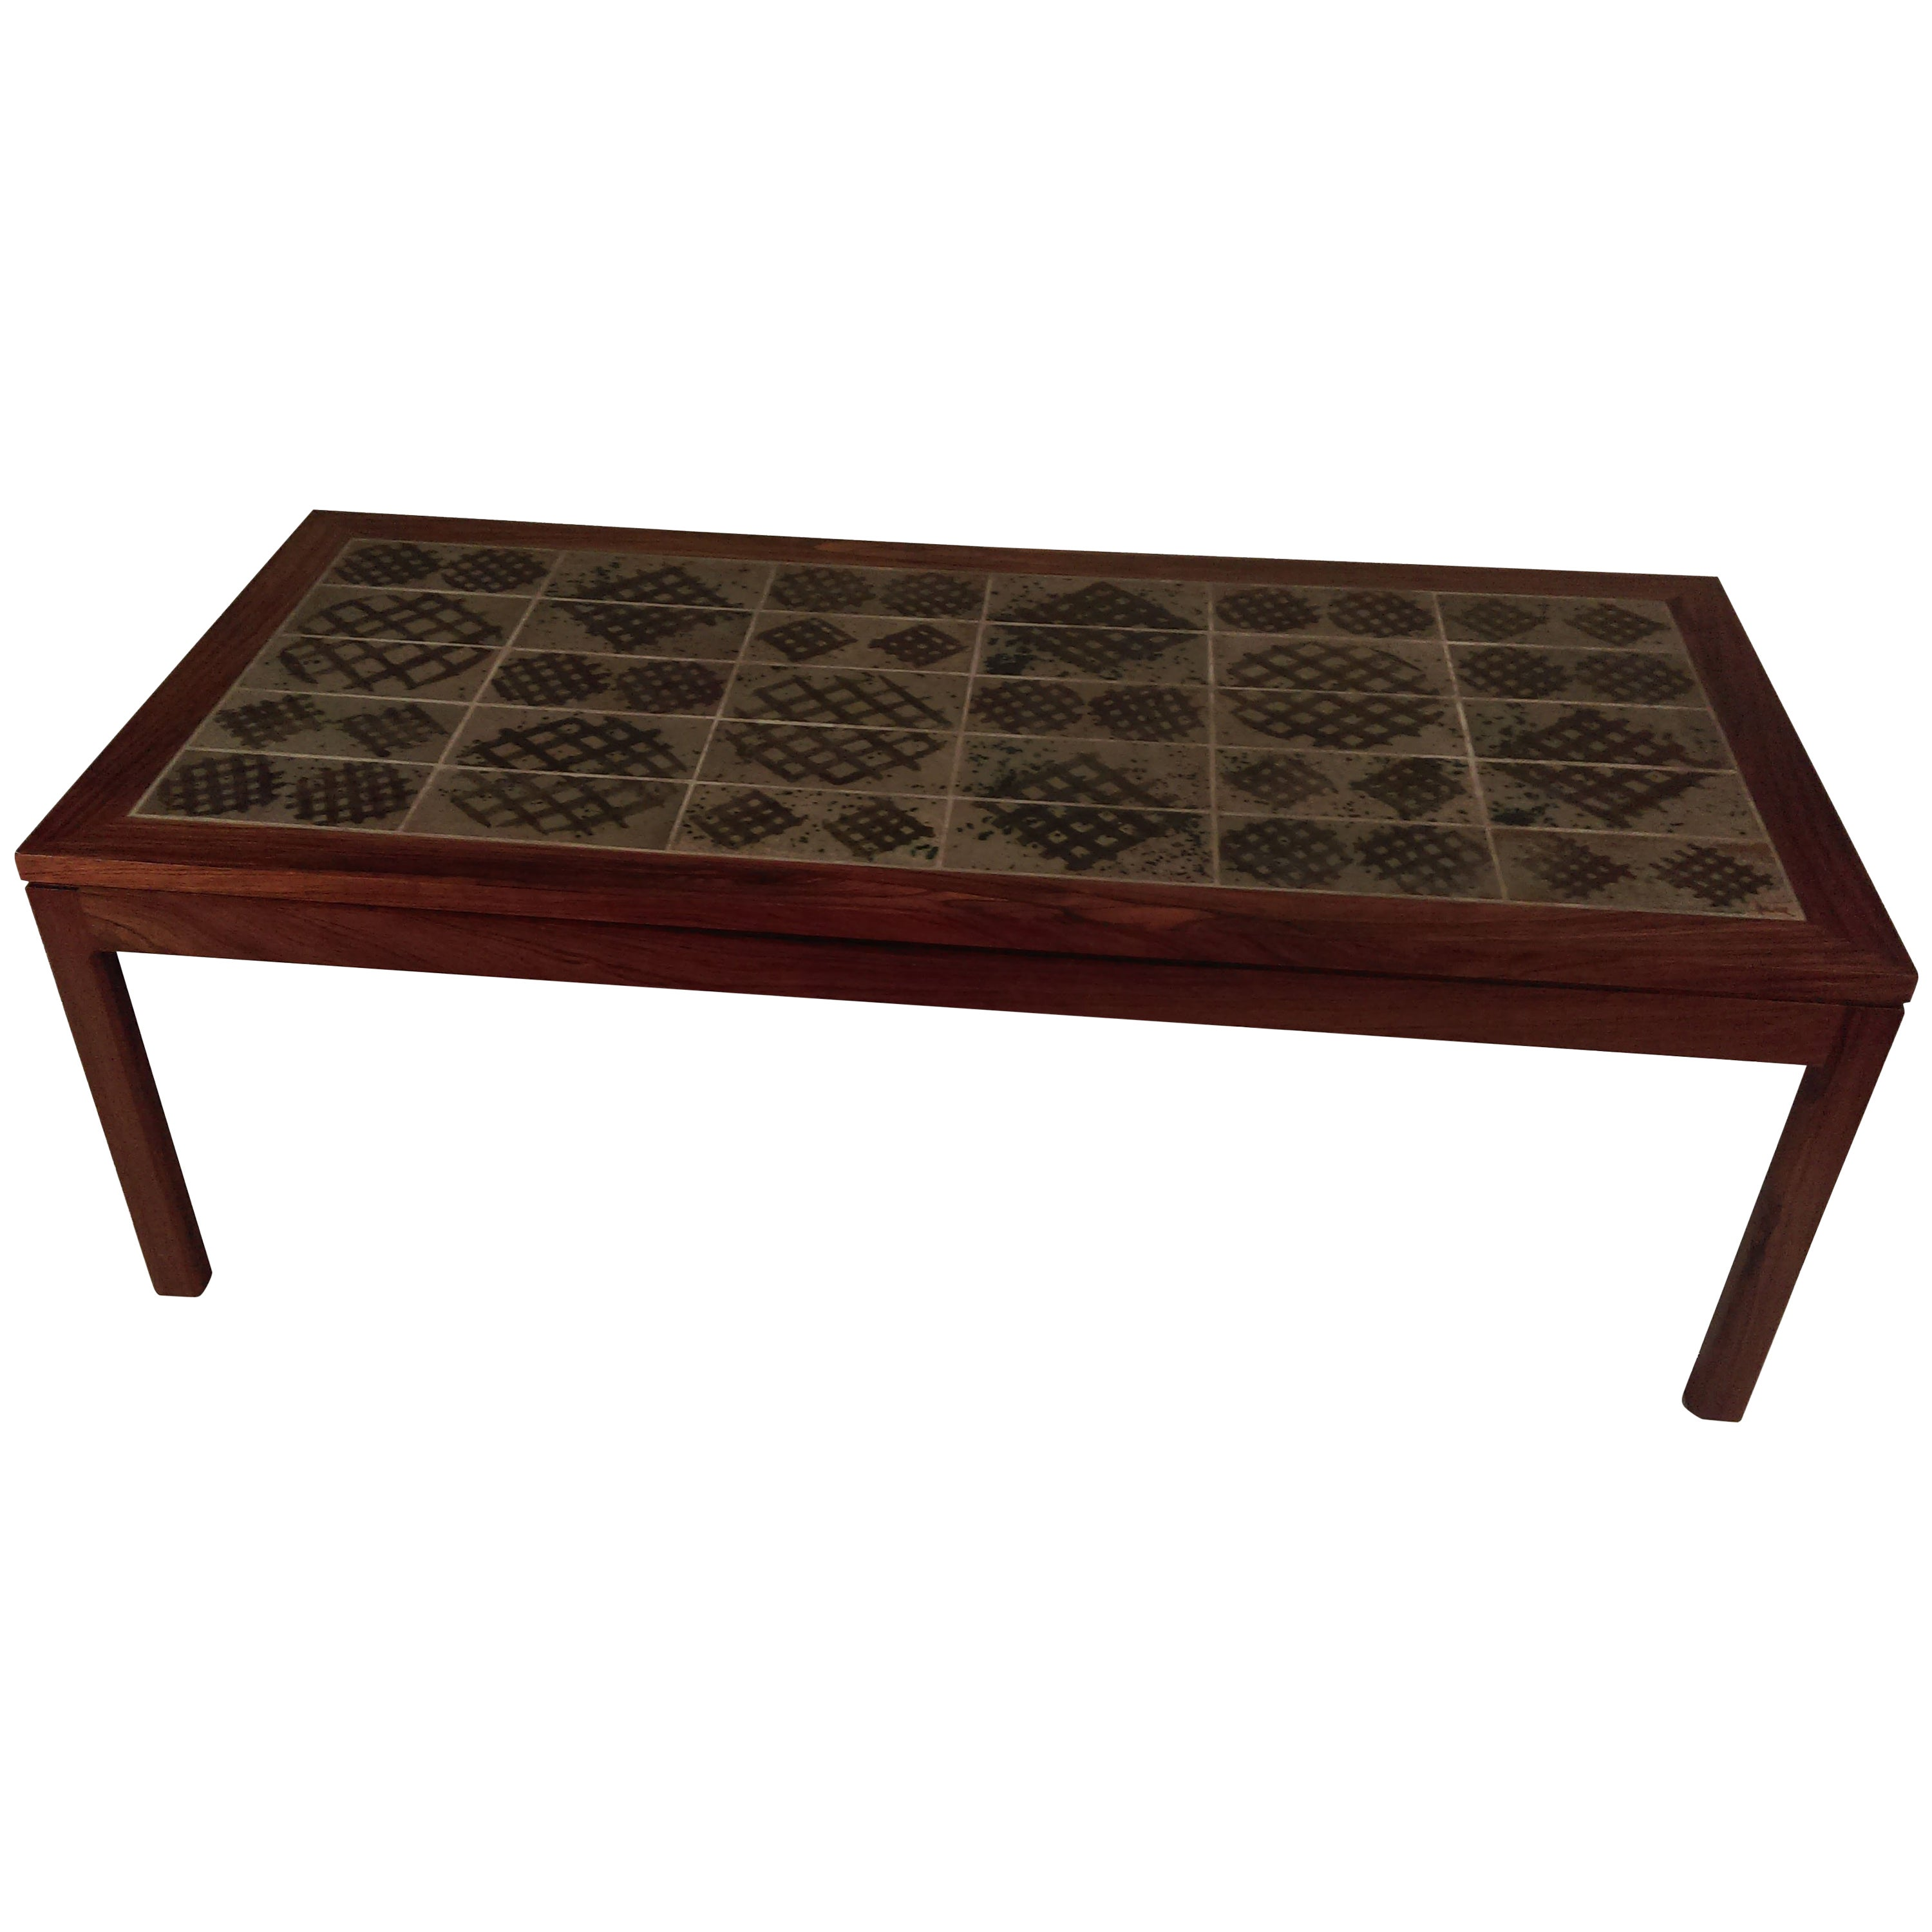 1960s Tue Poulsen Tile Topped Coffee Table in Rosewood